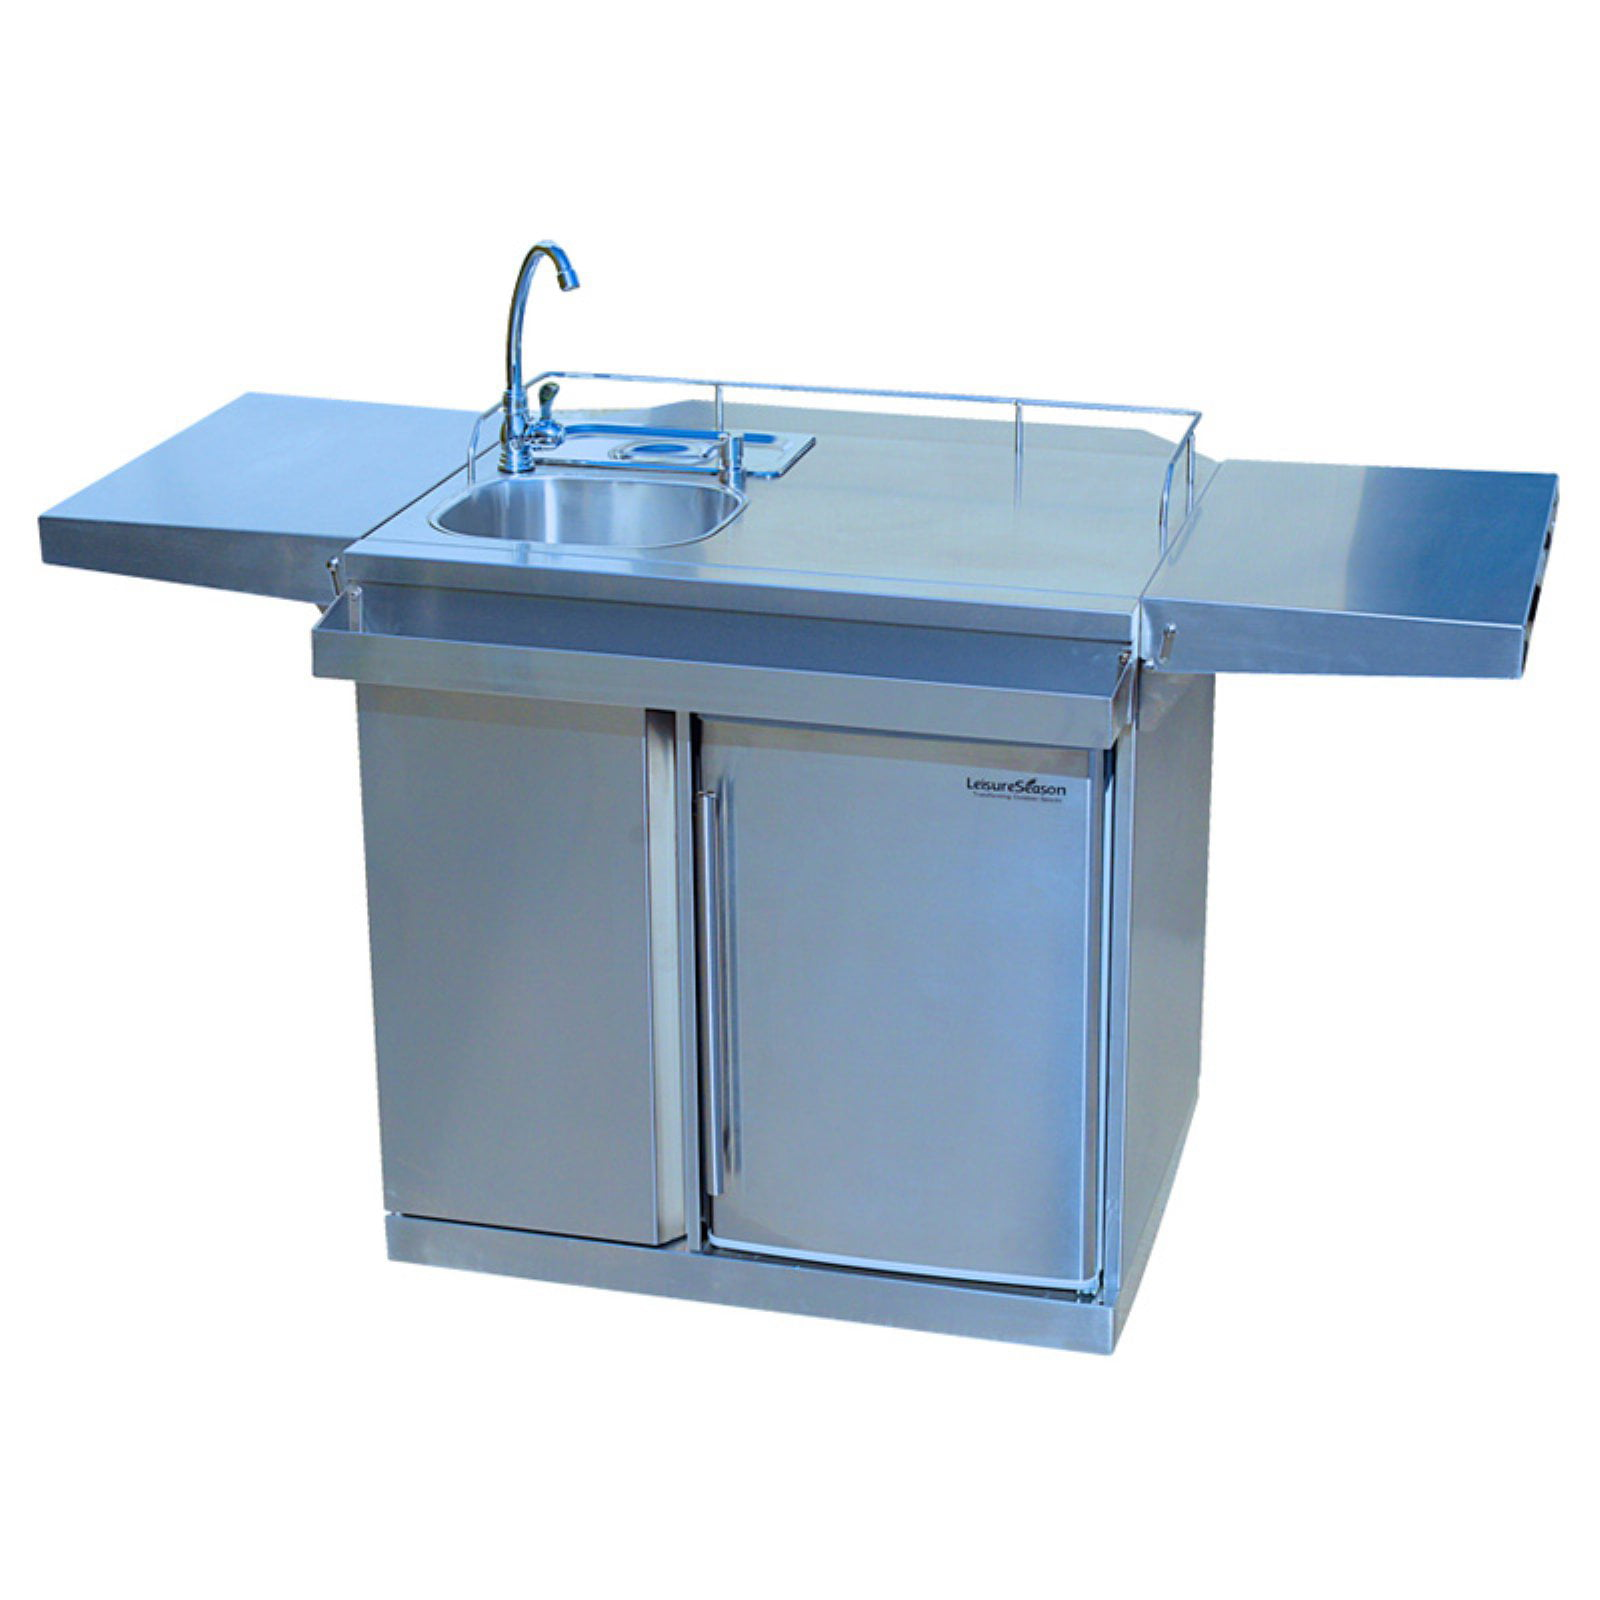 Leisure Season Outdoor Kitchen Cart with Fridge and Sink - Walmart.com